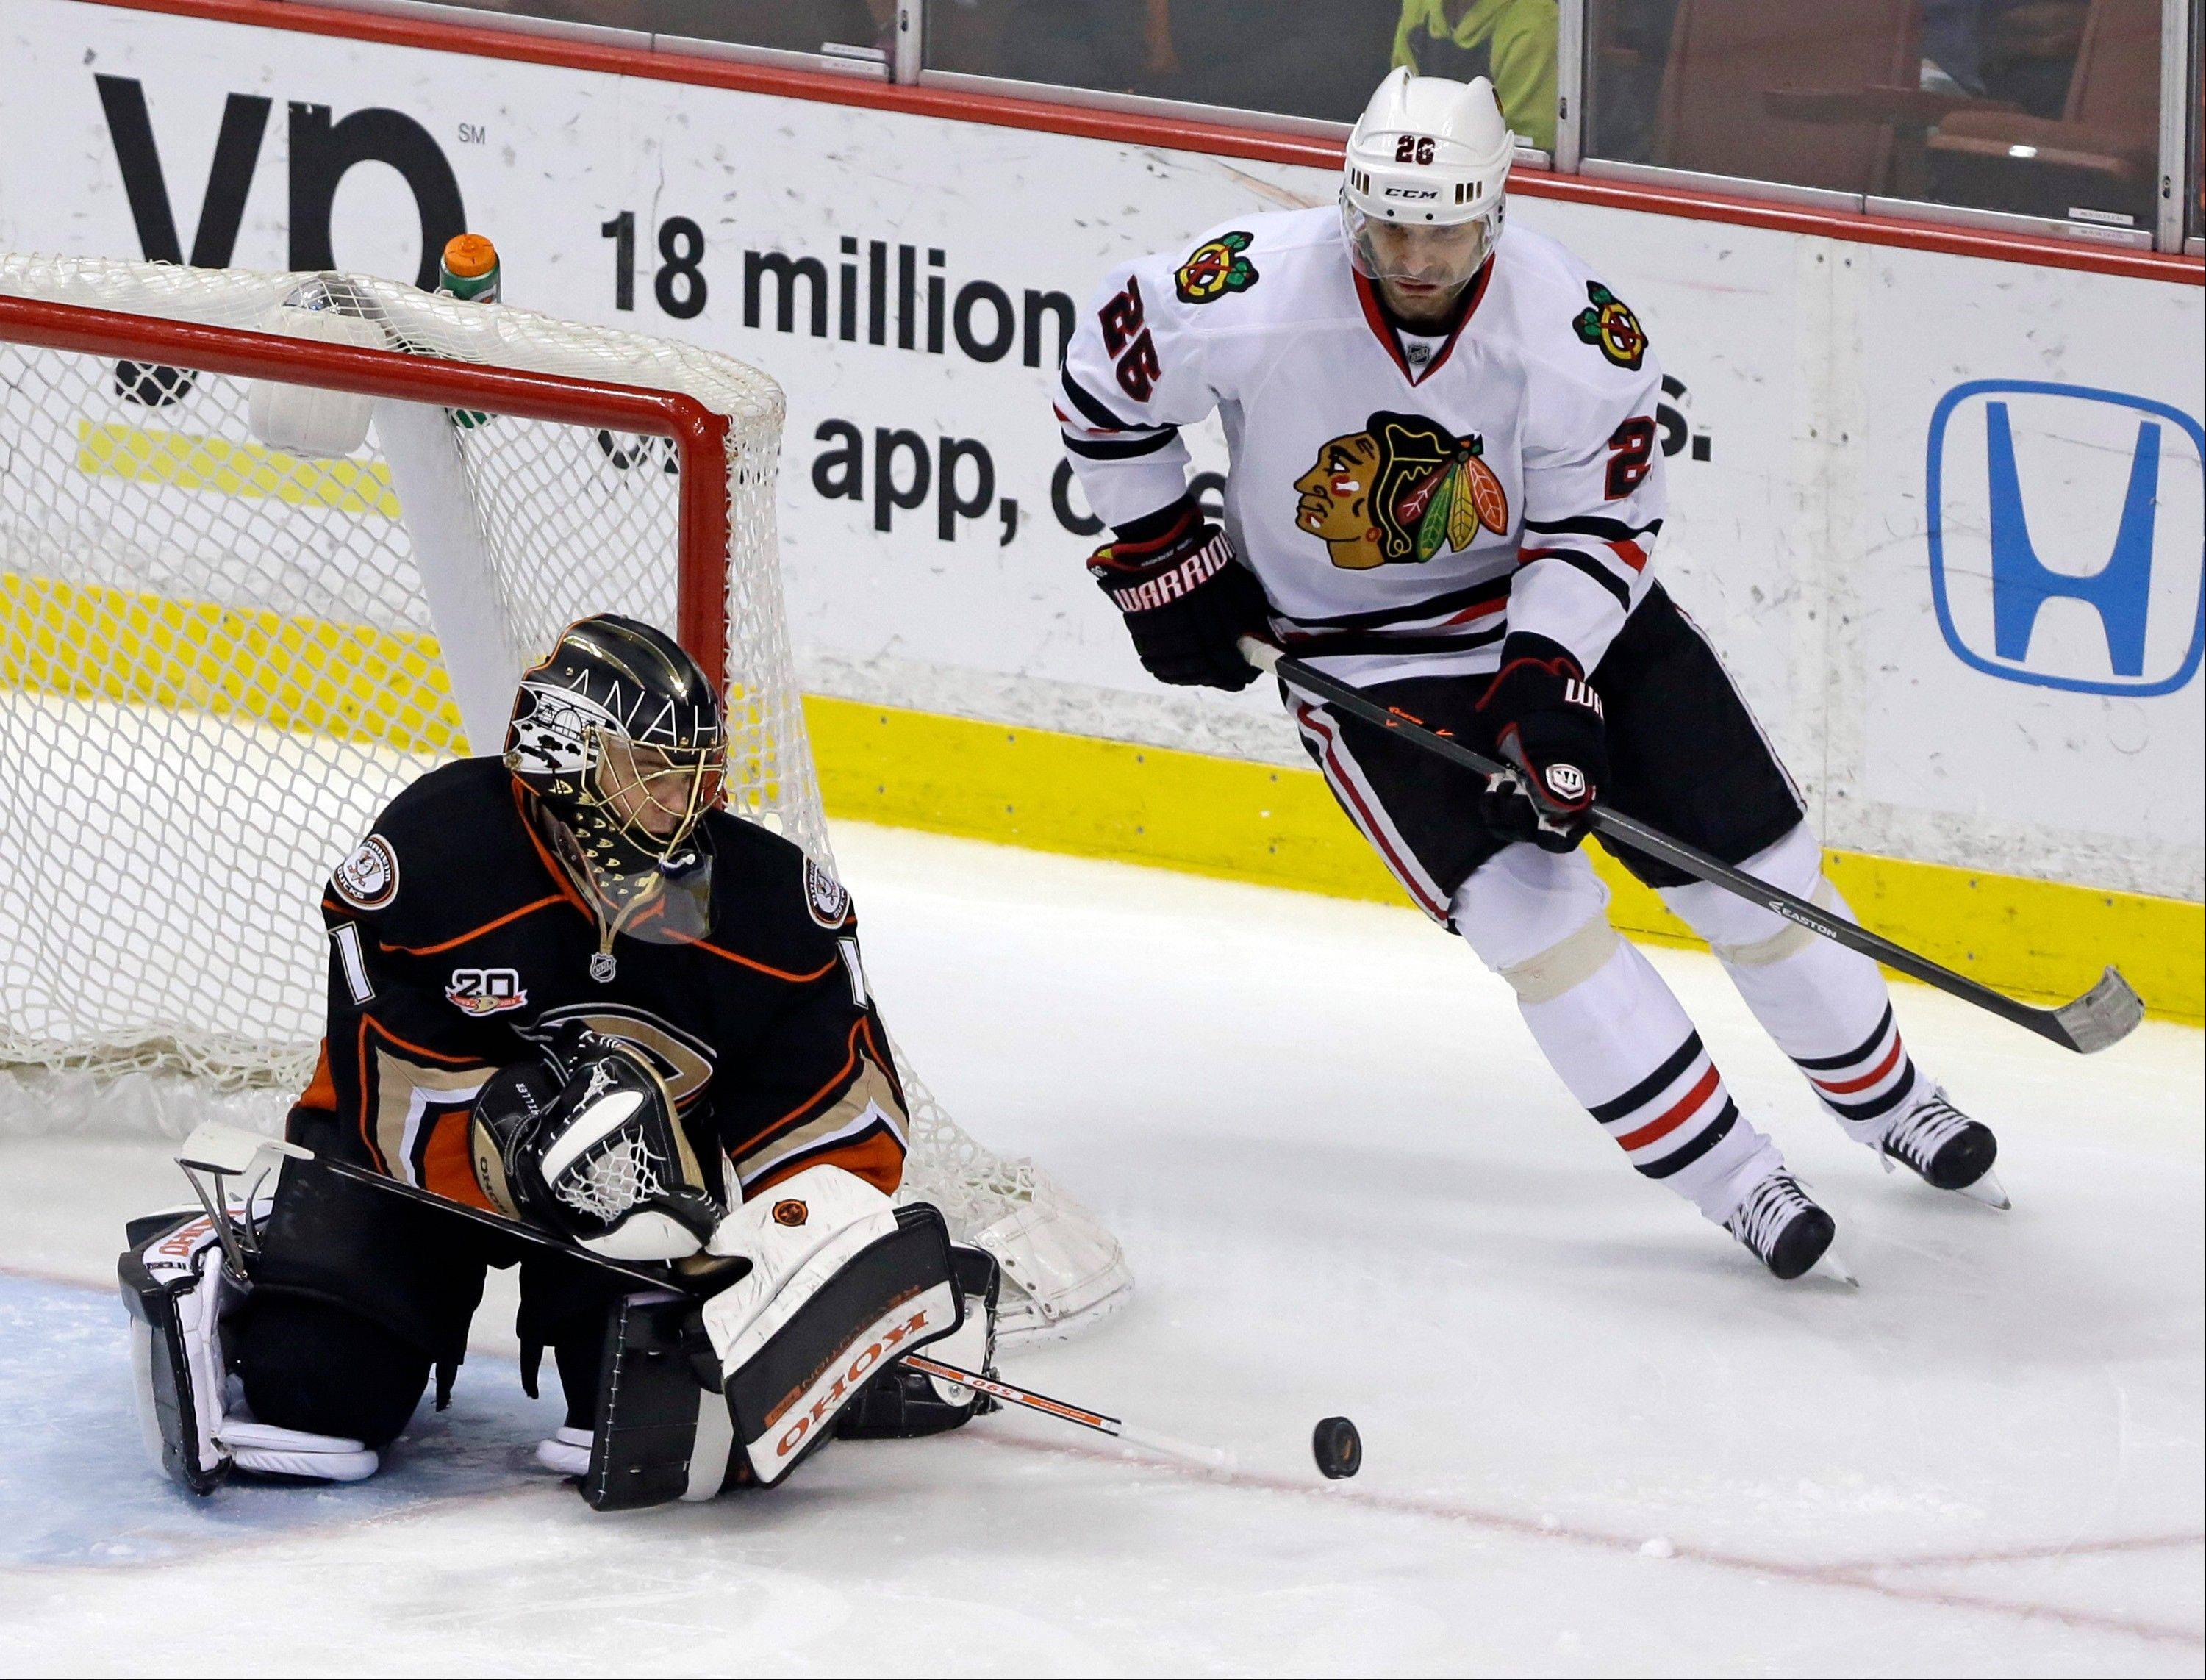 Anaheim Ducks goalie Jonas Hiller (1), of Switzerland, deflects the puck as Chicago Blackhawks center Michal Handzus (26), of the Czech Republic, skates past during the second period of an NHL hockey game in Anaheim, Calif., Wednesday, Feb. 5, 2014.